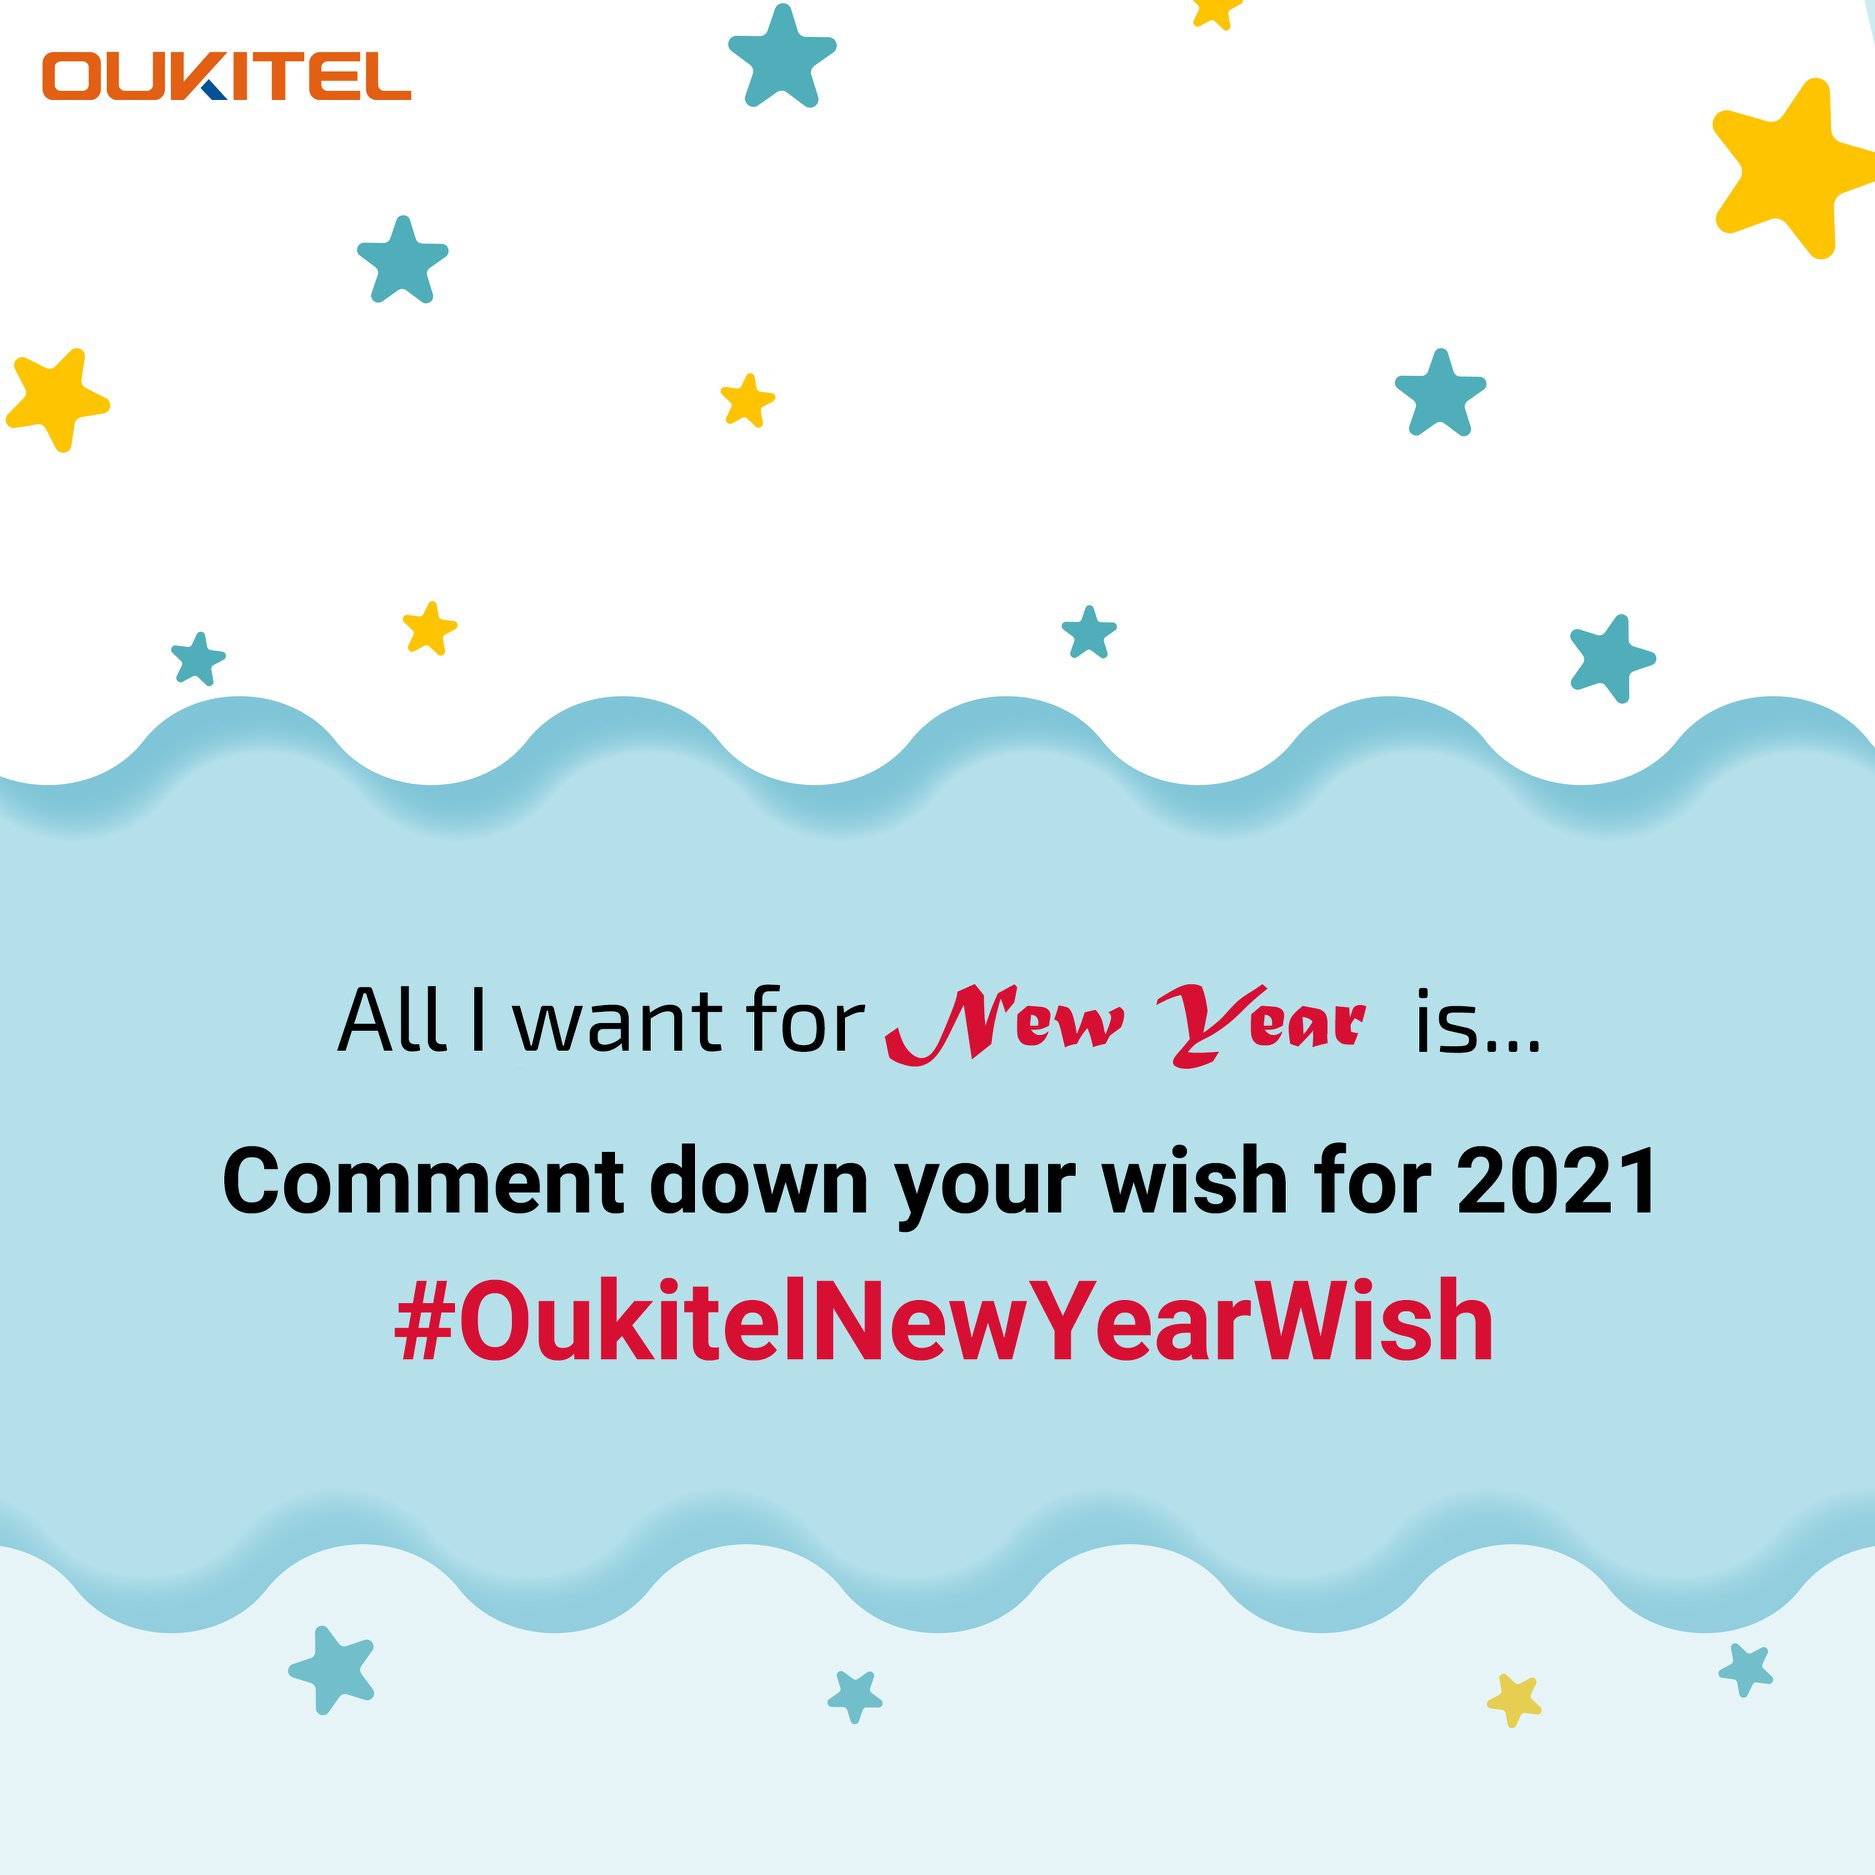 2020 comes end, what you planning or wishing for #NewYear 2021?🤔 Comment down your new year wish using #OukitelNewYearWish, and let us know☺️🤗 WP10 will available at $100 off from Jan 1, 2021📣...